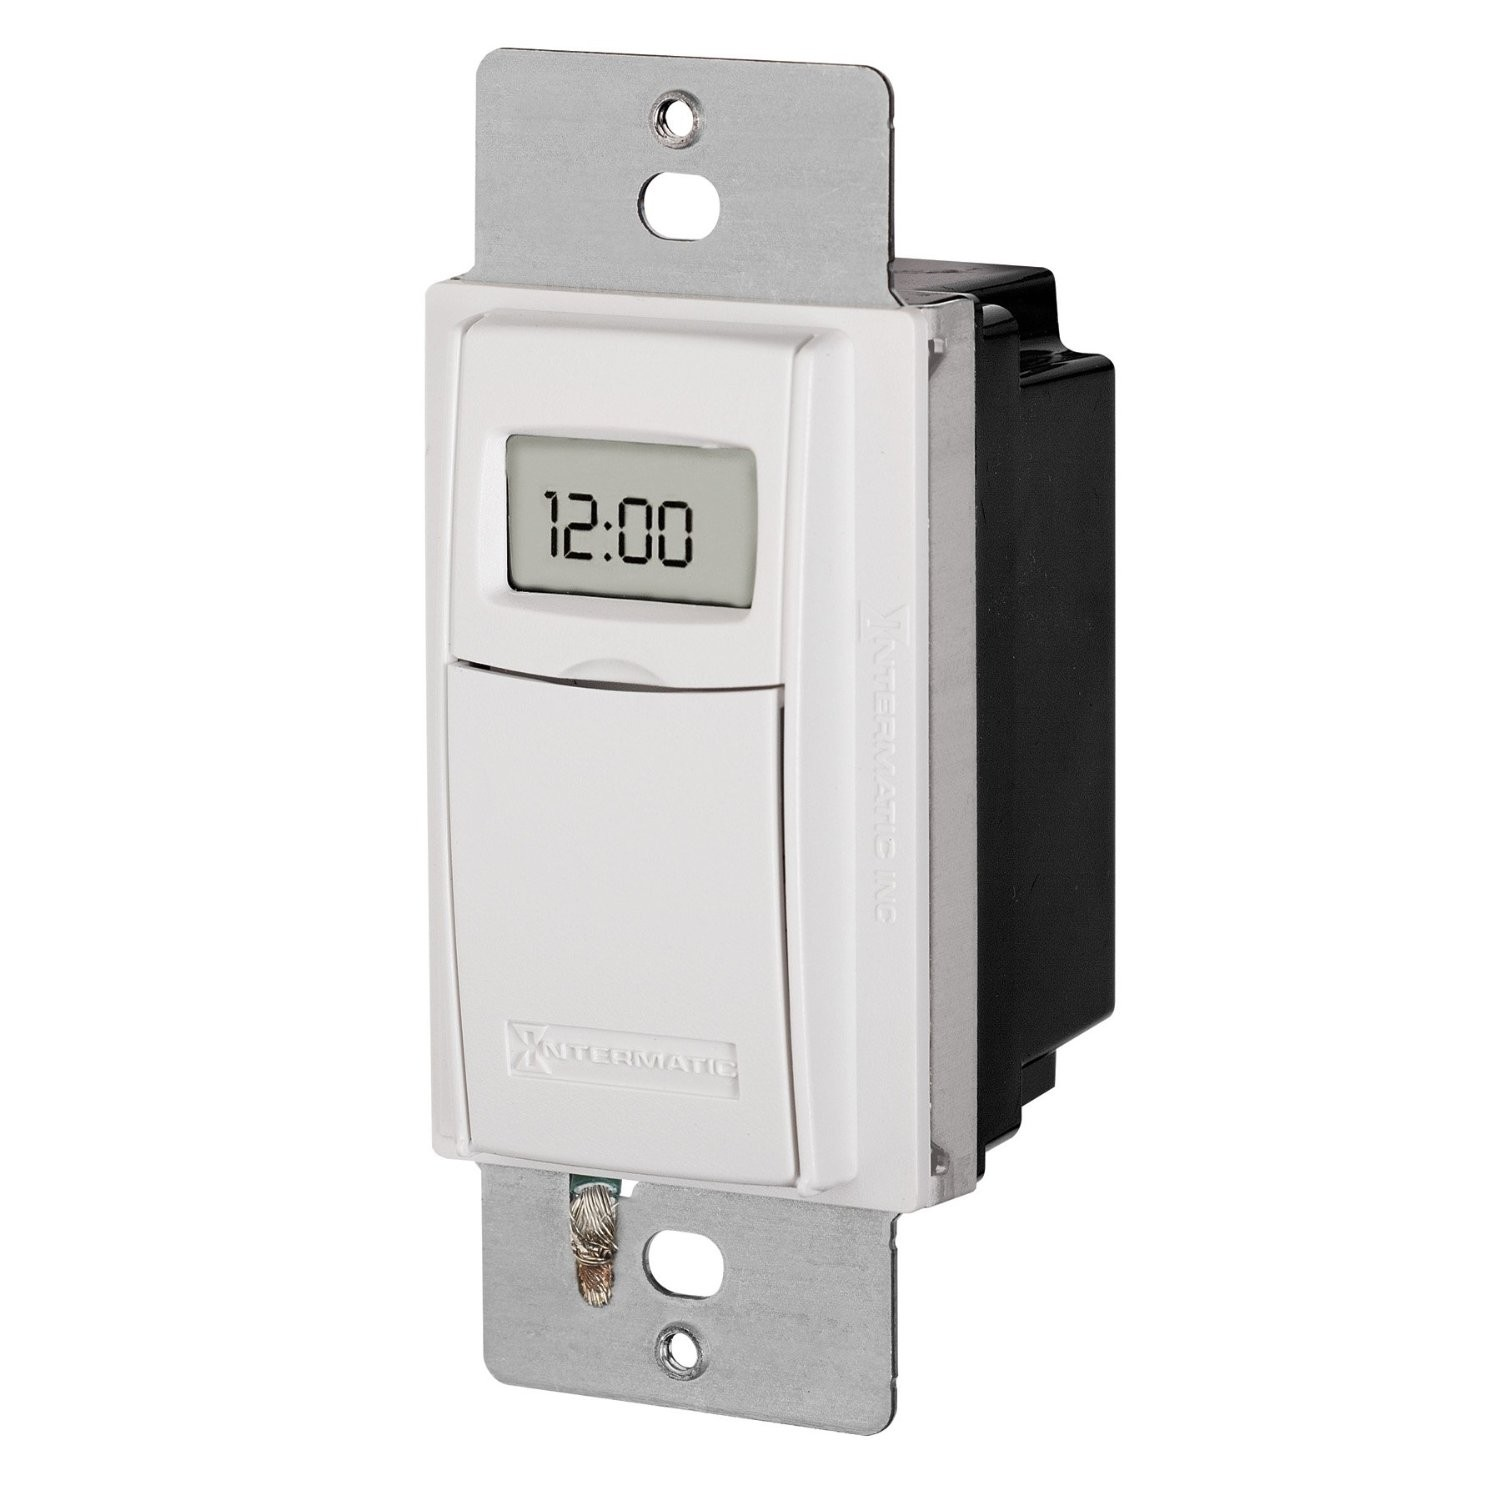 Intermatic ST01A Timer, 120/277V 15A 7-Day Digital In-Wall Timer - Almond